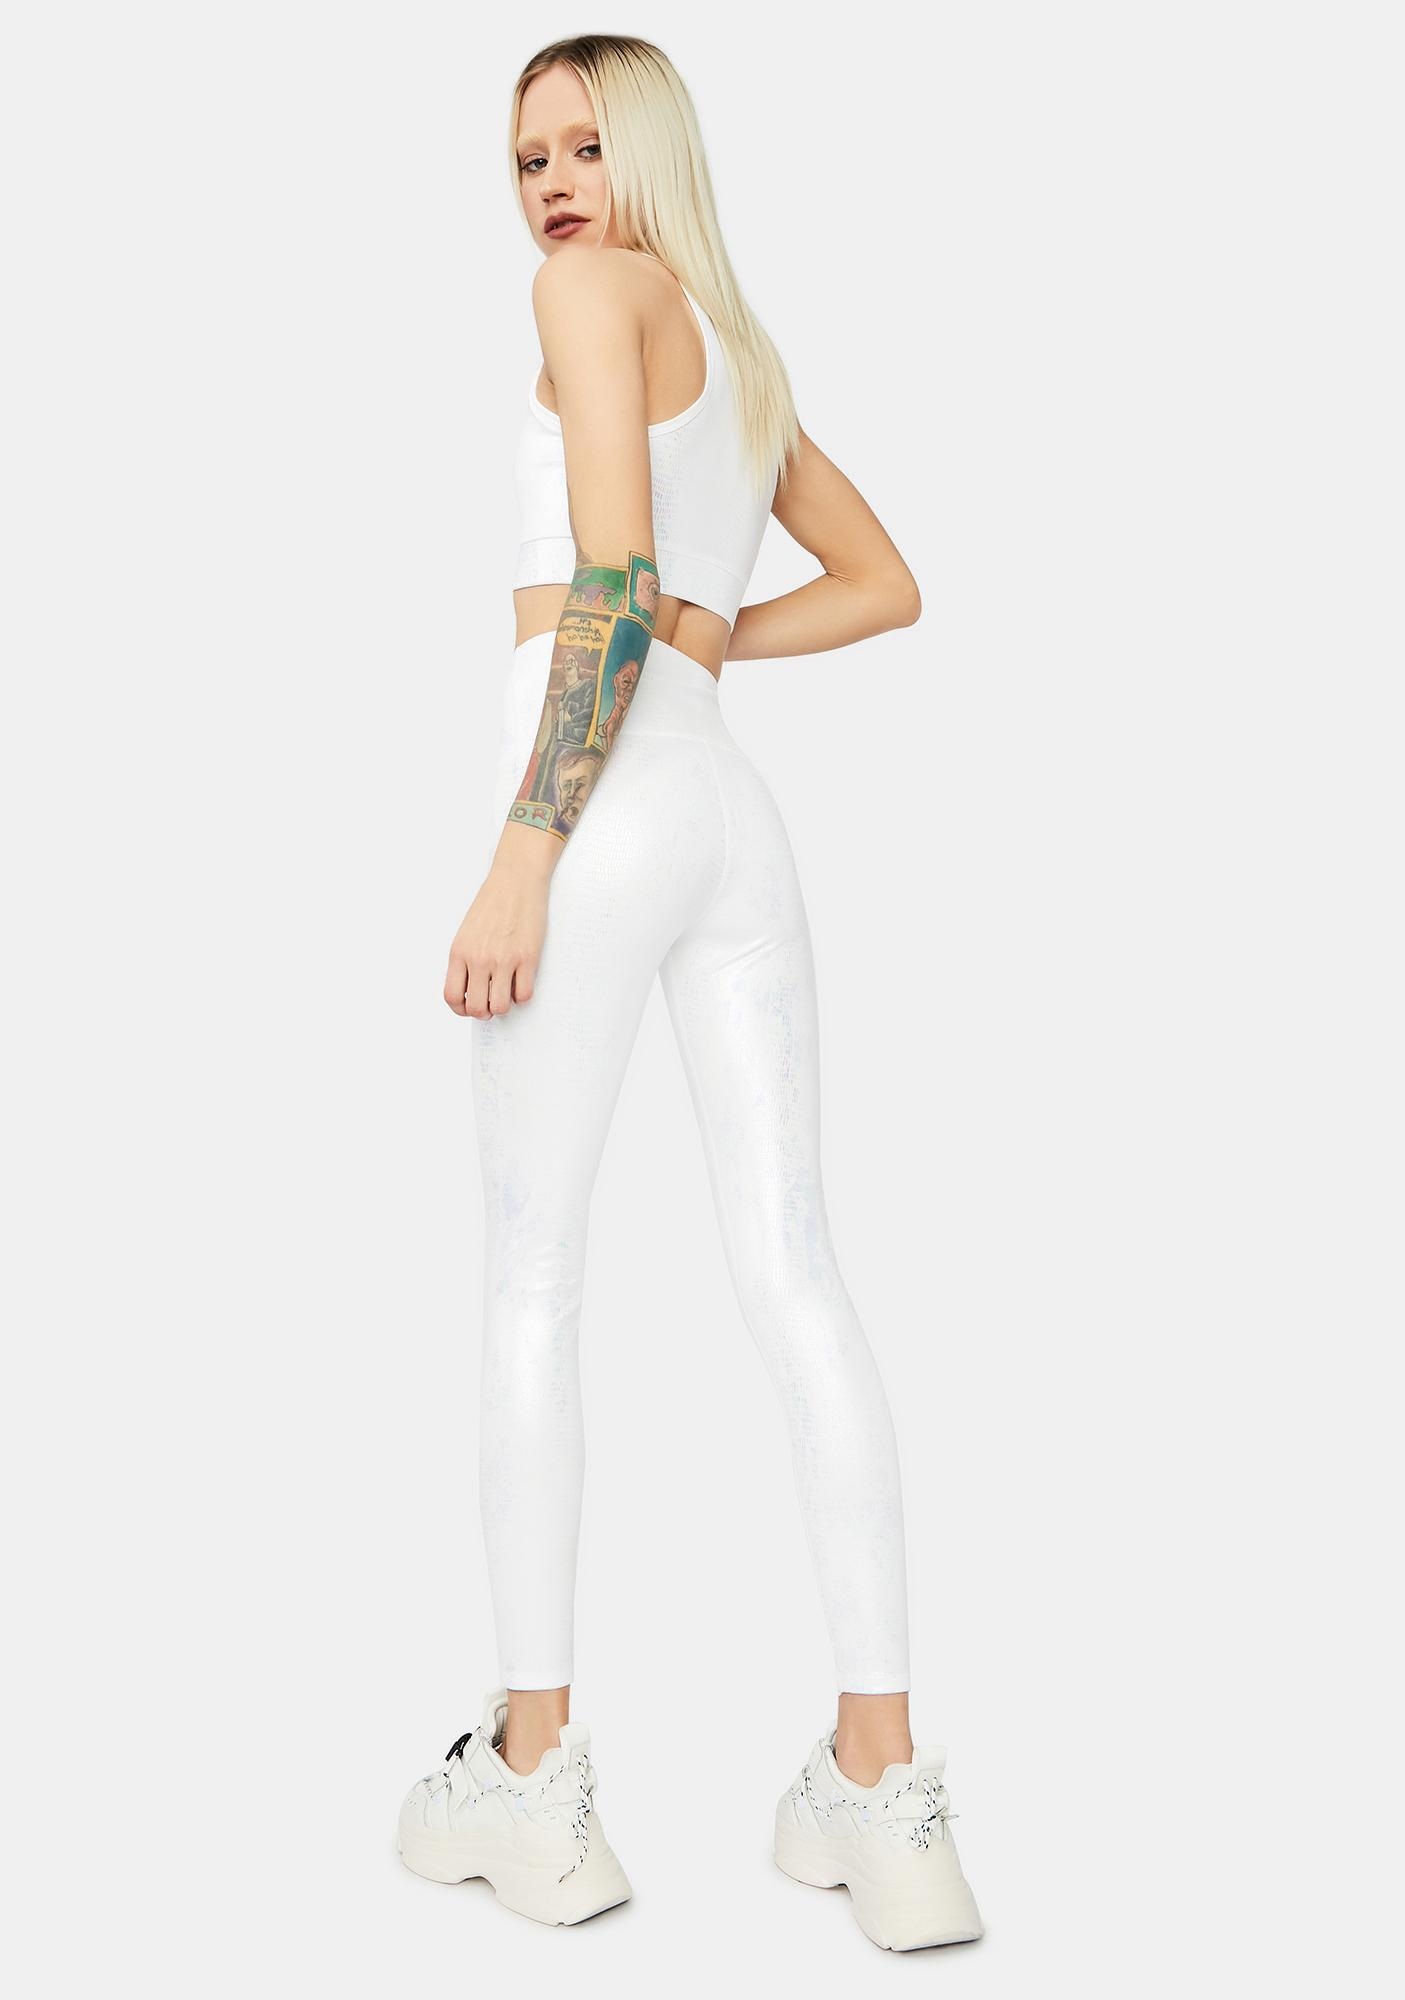 Pure Body Ody Ody Iridescent Sport Leggings